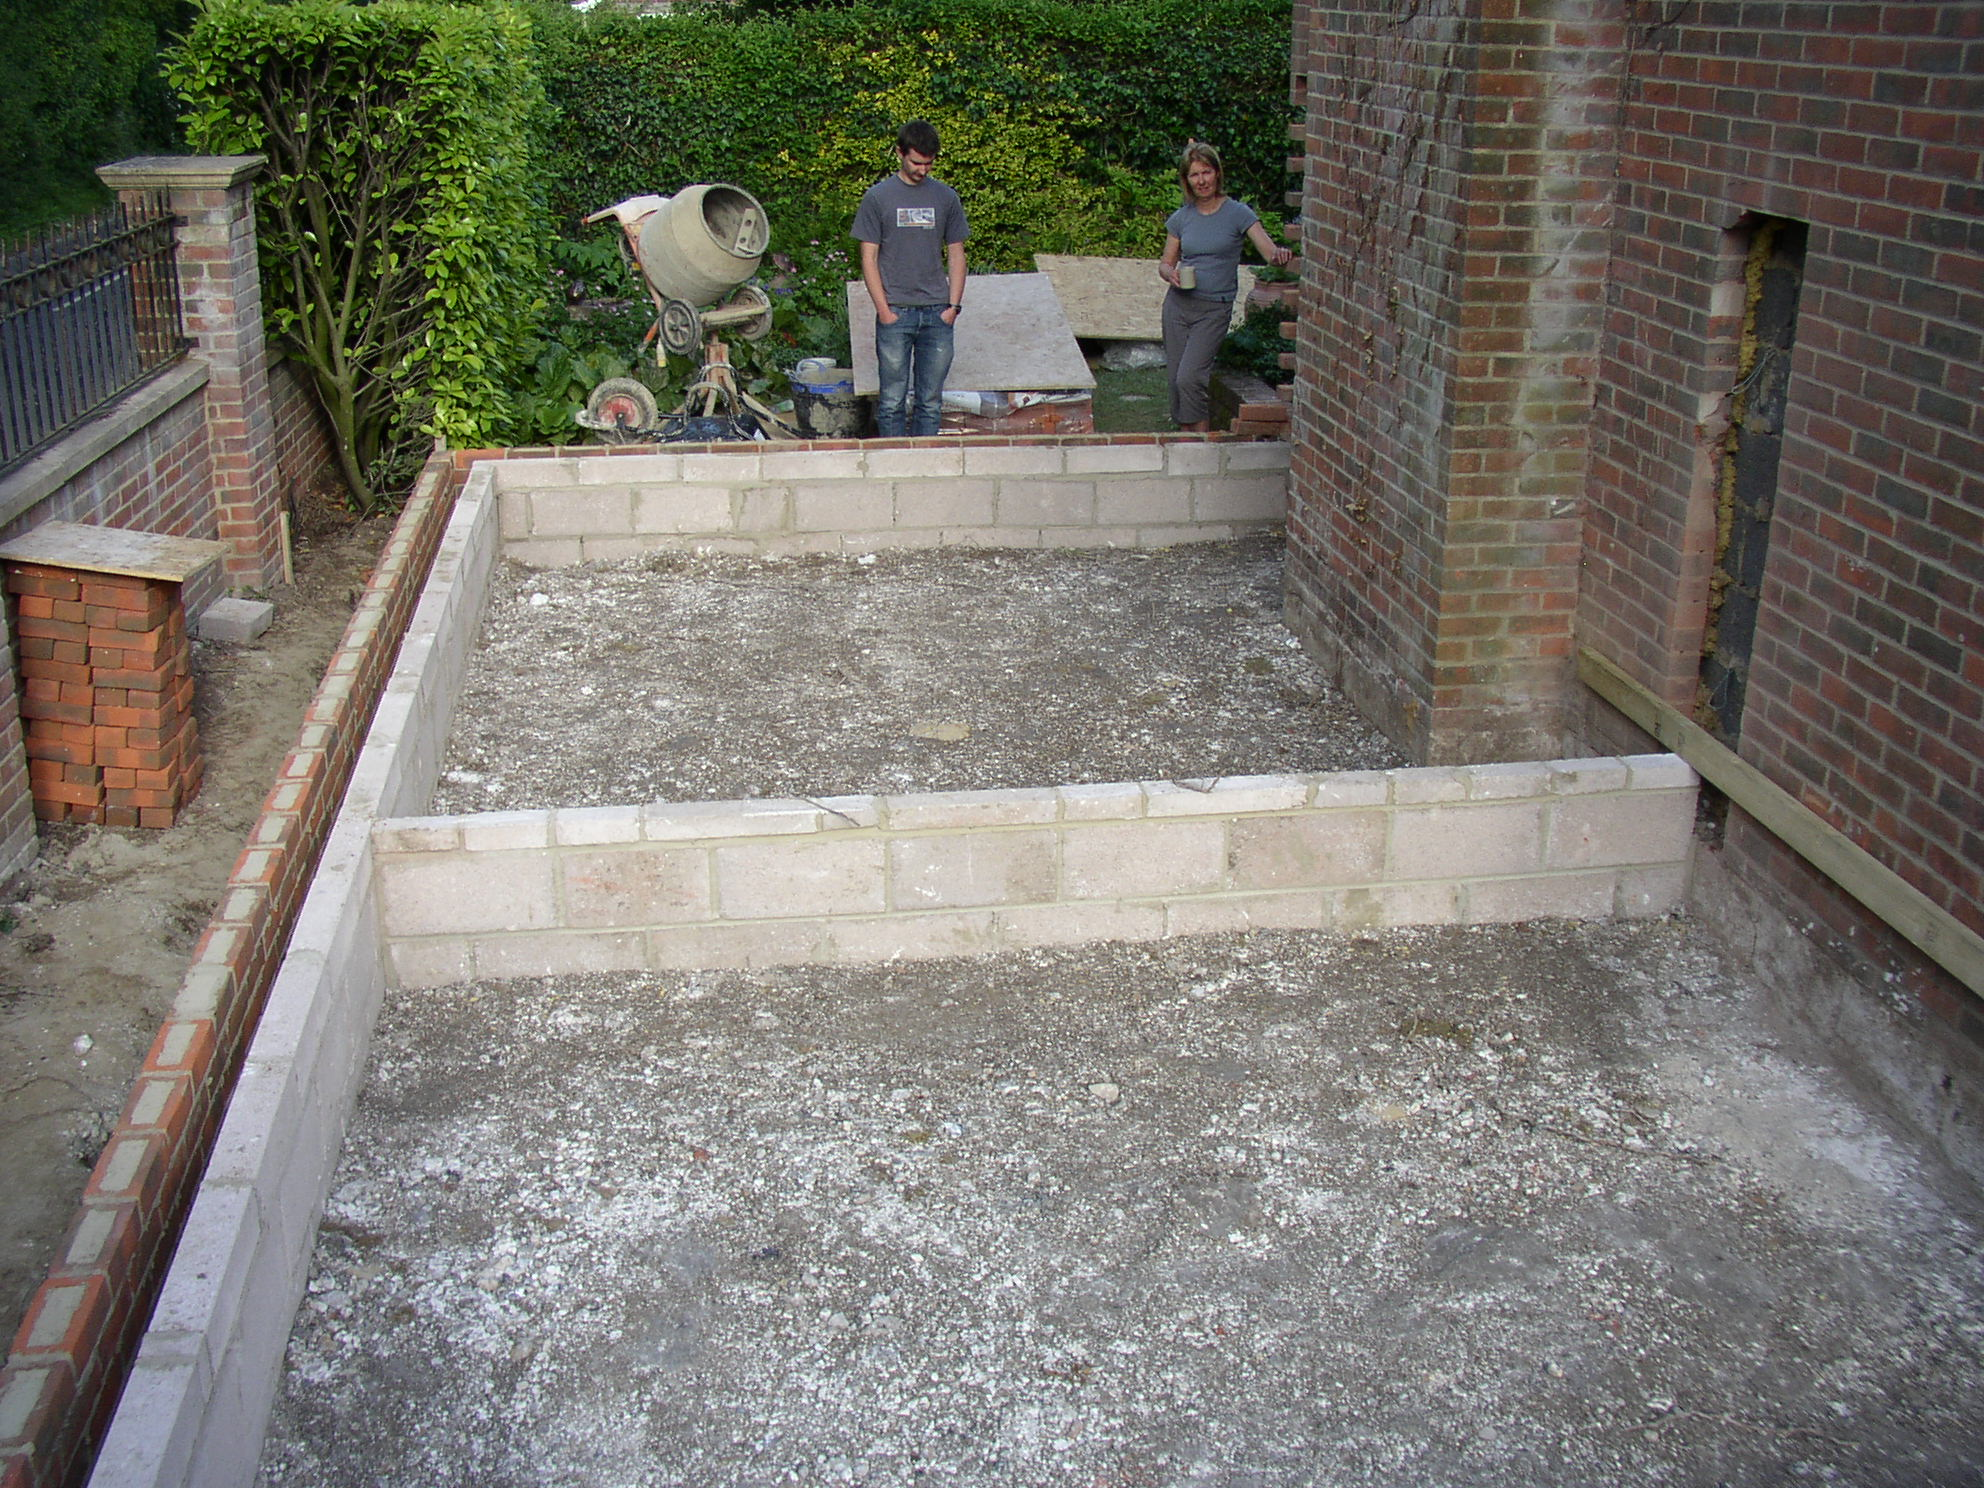 The foundations and start of building work